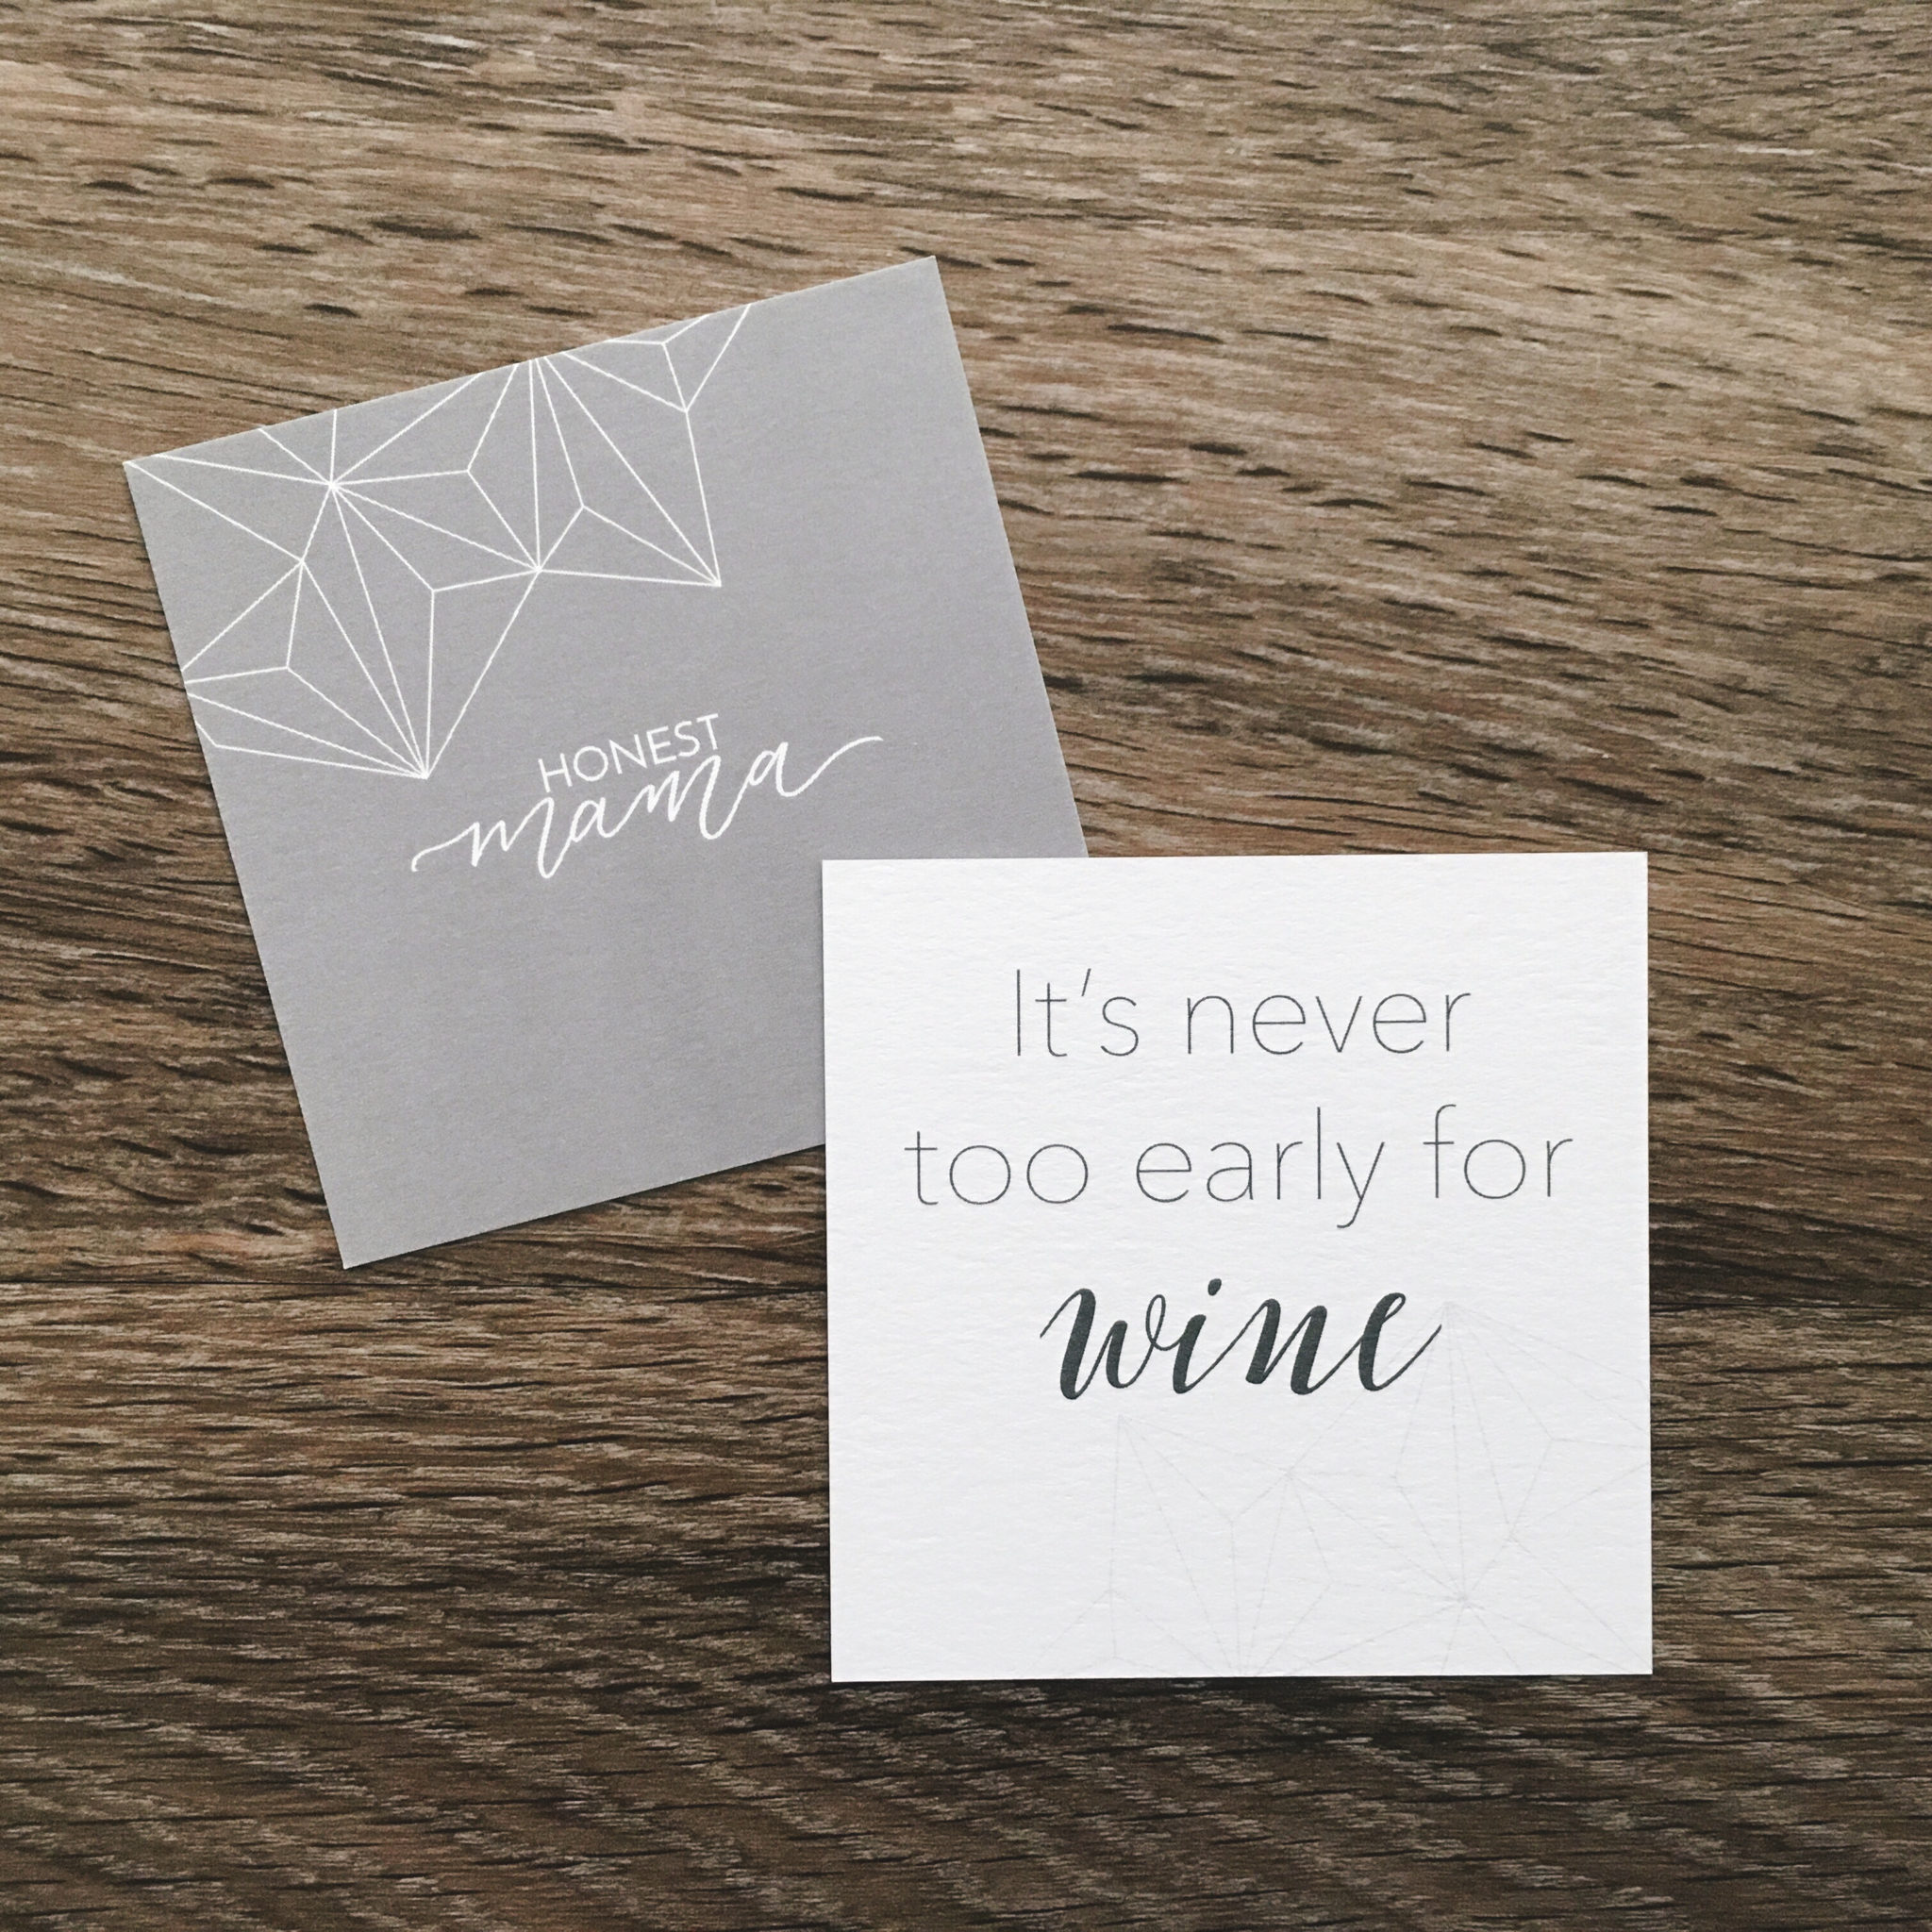 Honest Mama Connection Cards